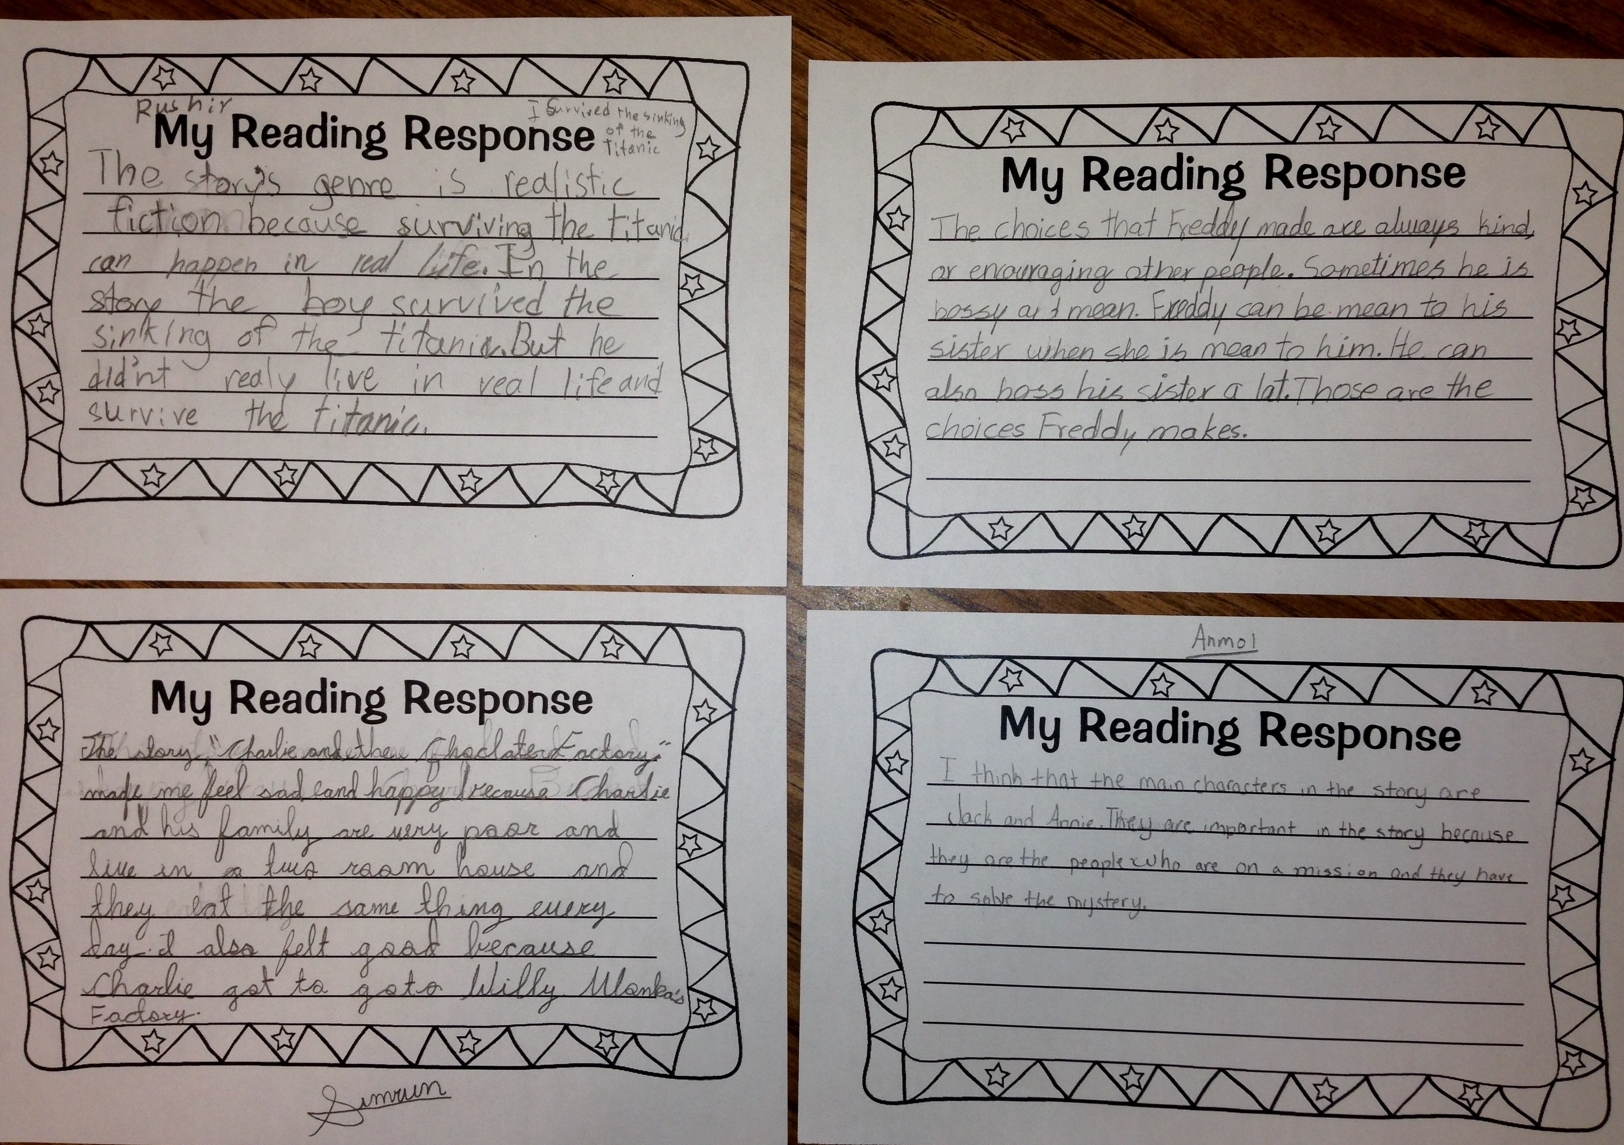 book report prompts Description fasten these book report prompts with a brass prong or brad and your student will have a handy tool if needed for oral book reports.